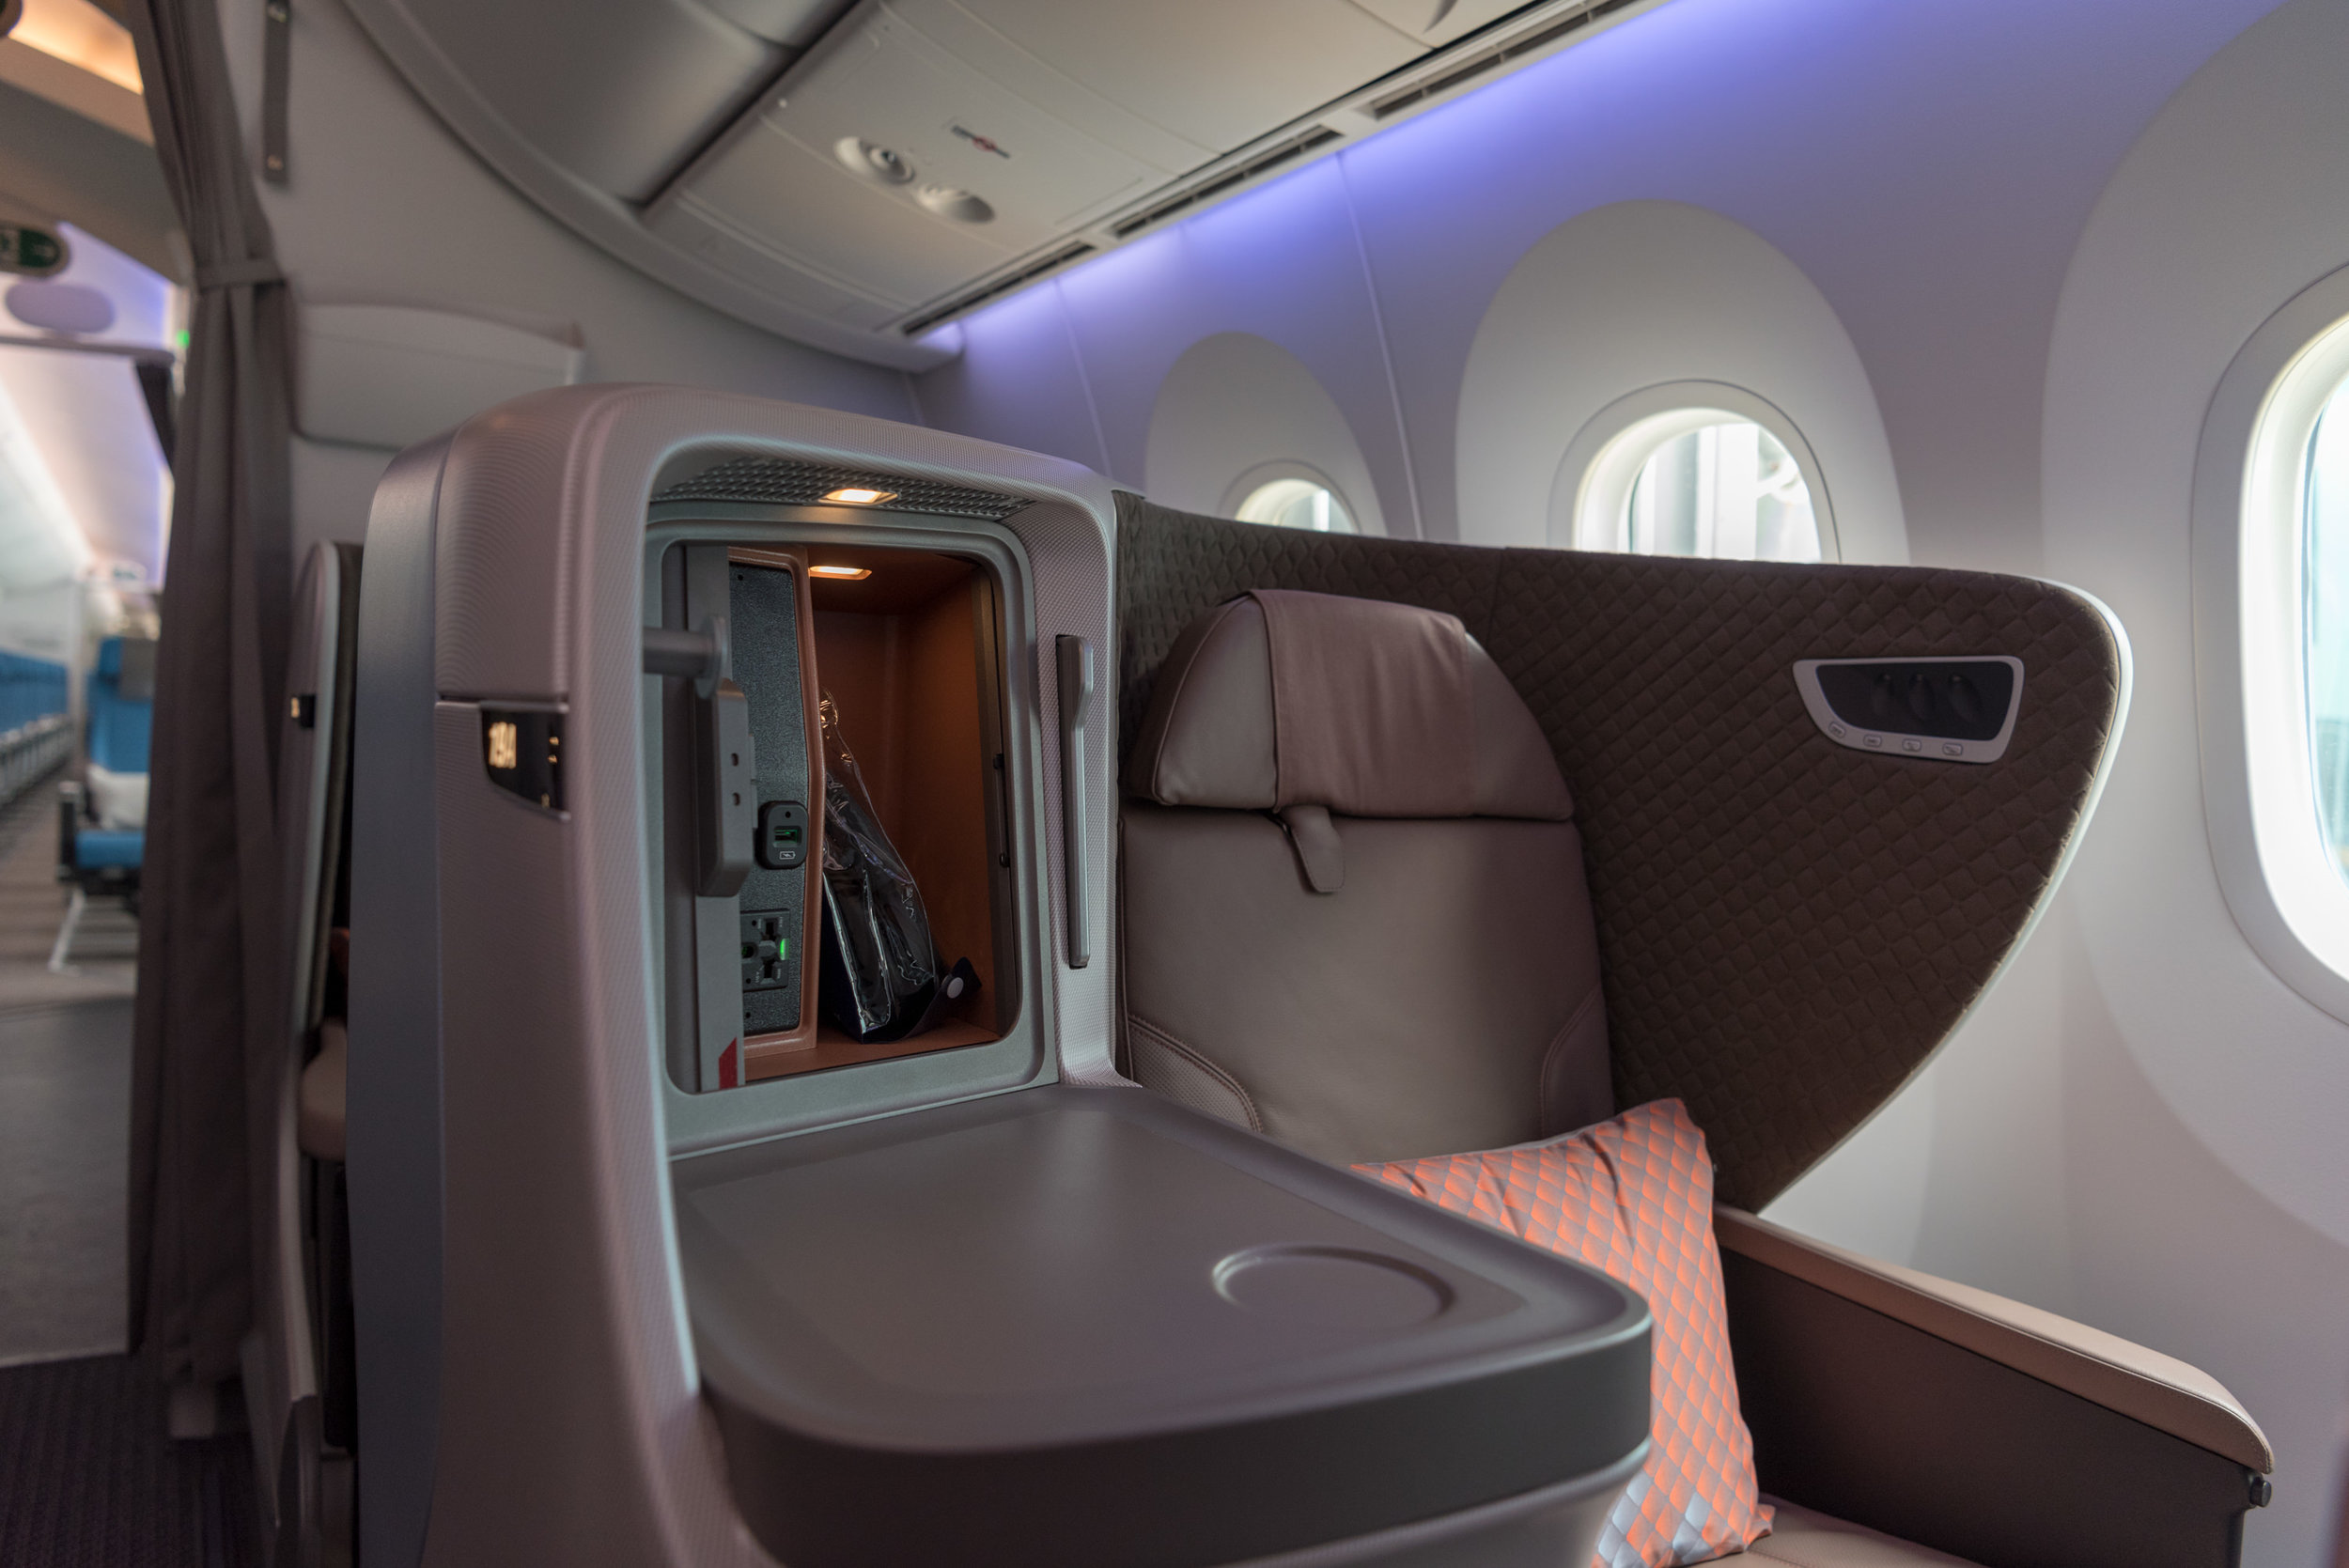 Seat New Regional Business Class (2018) - Singapore Airlines